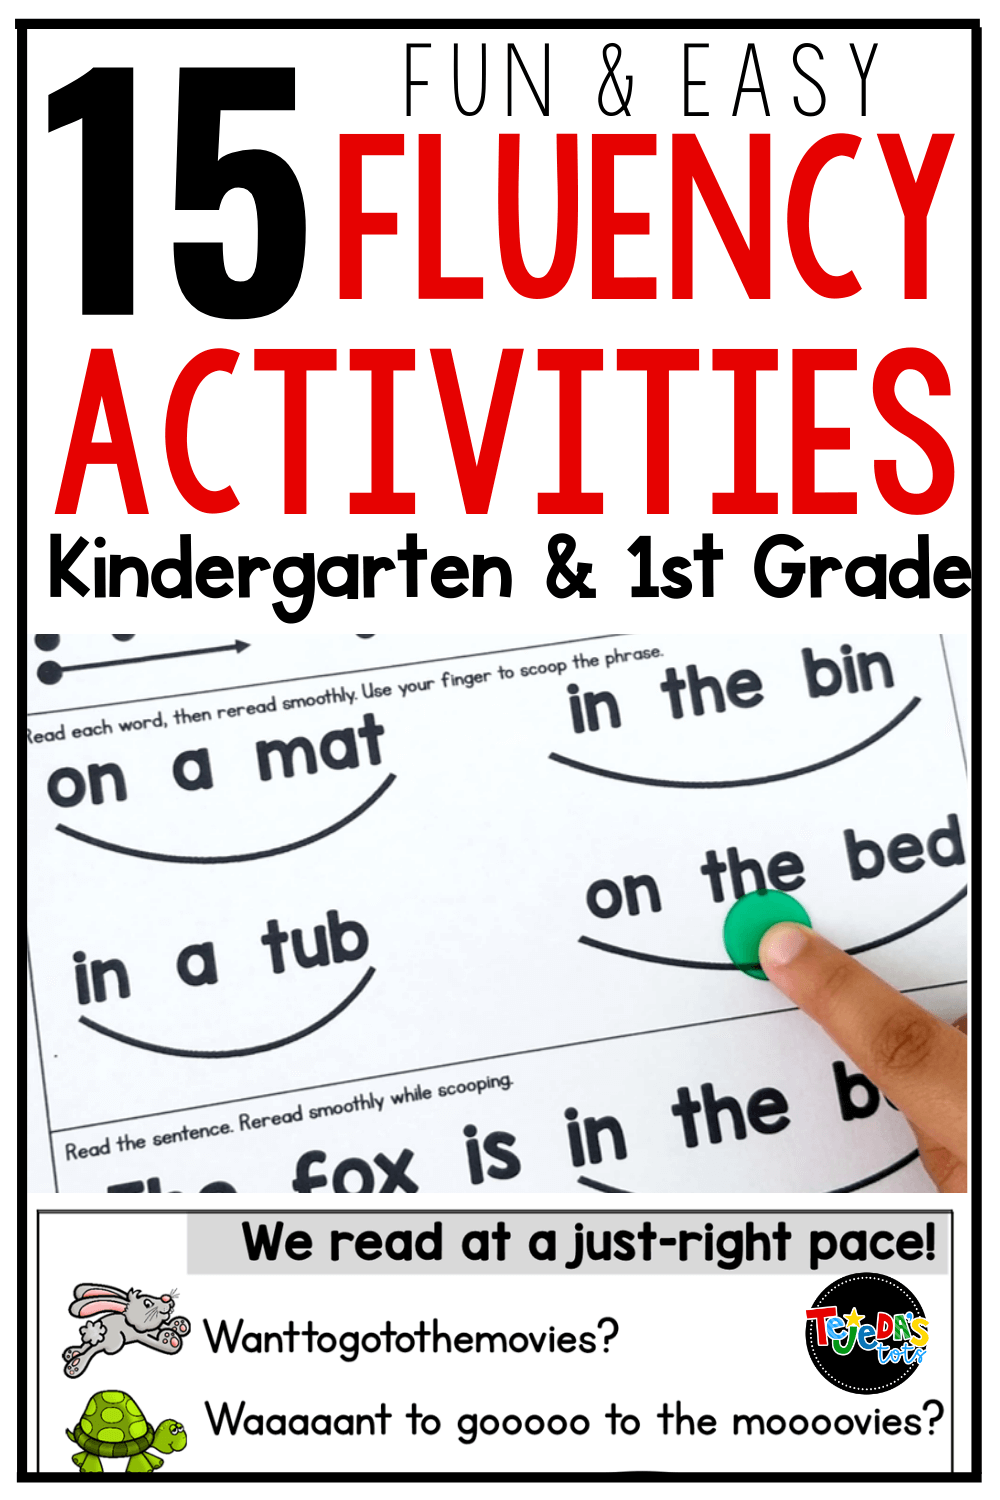 15 Easy Activities to Increase Fluency